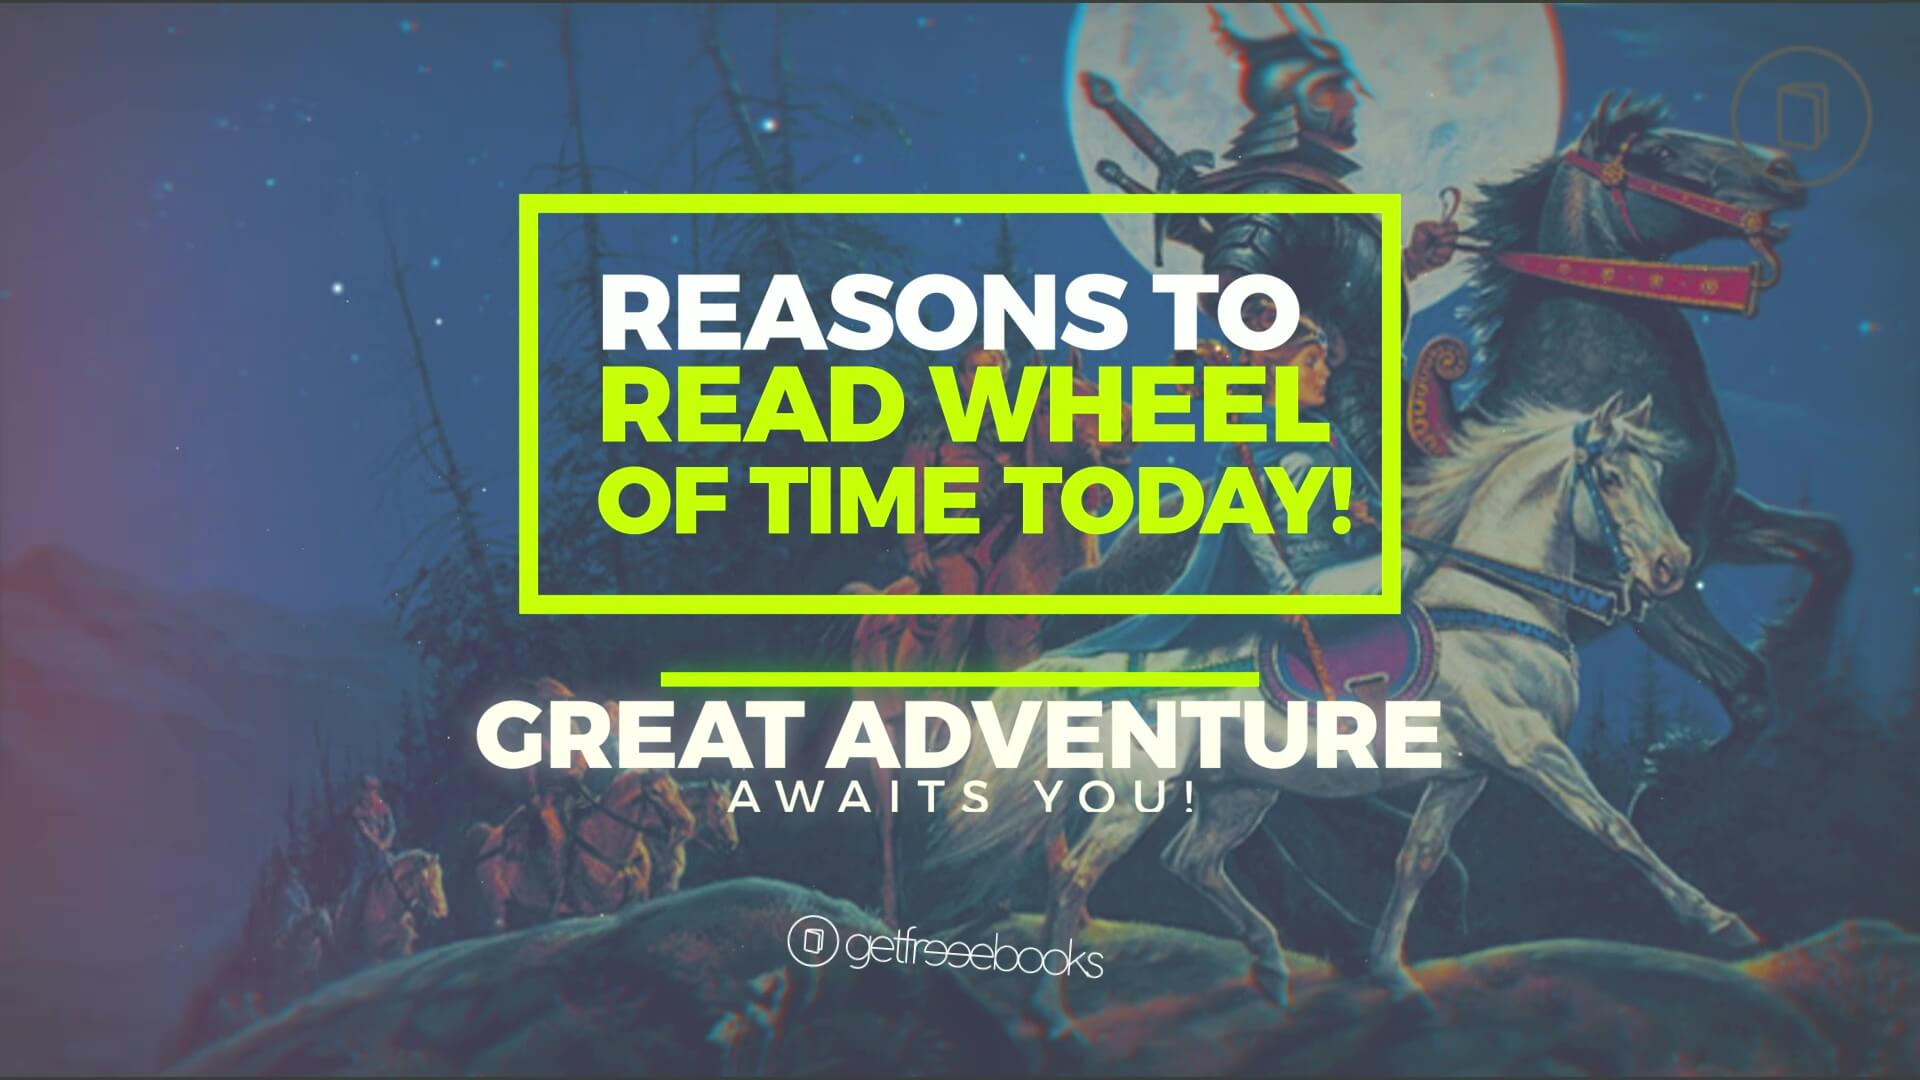 Why You Should Read Wheel of Time